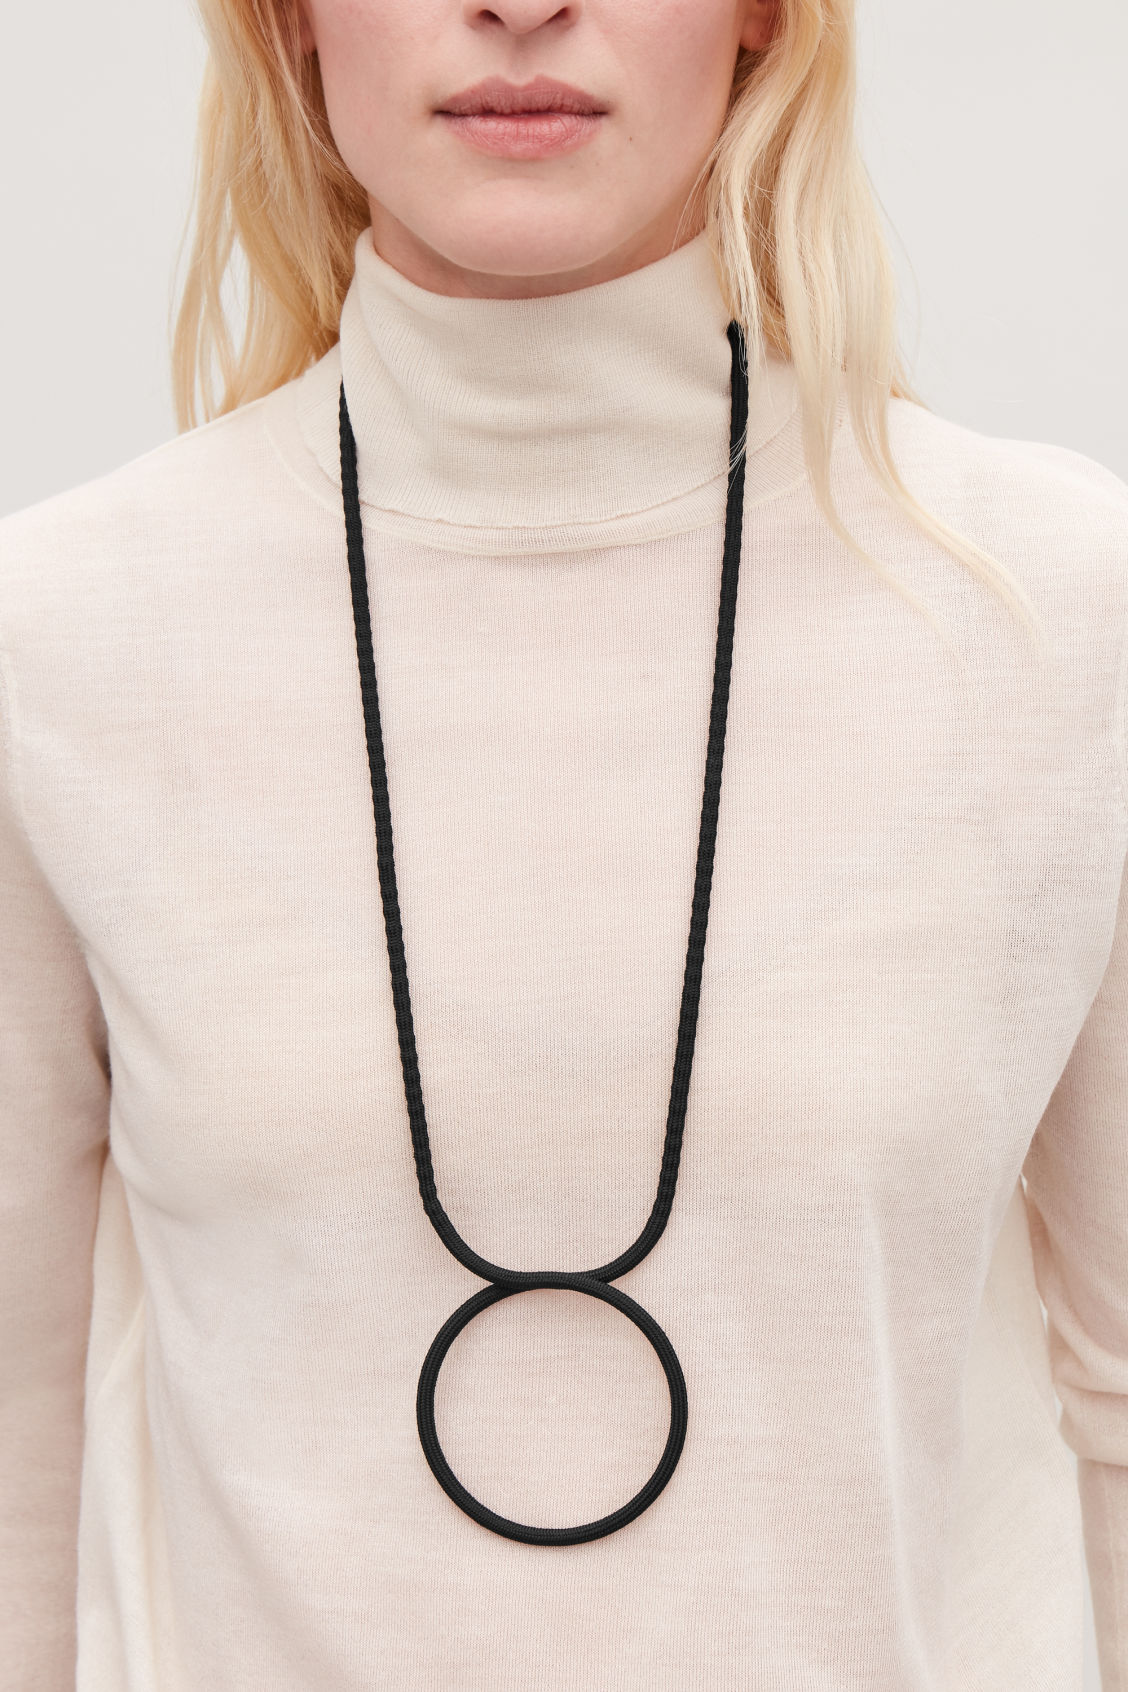 Detailed image of Cos long fabric-ring necklace in black